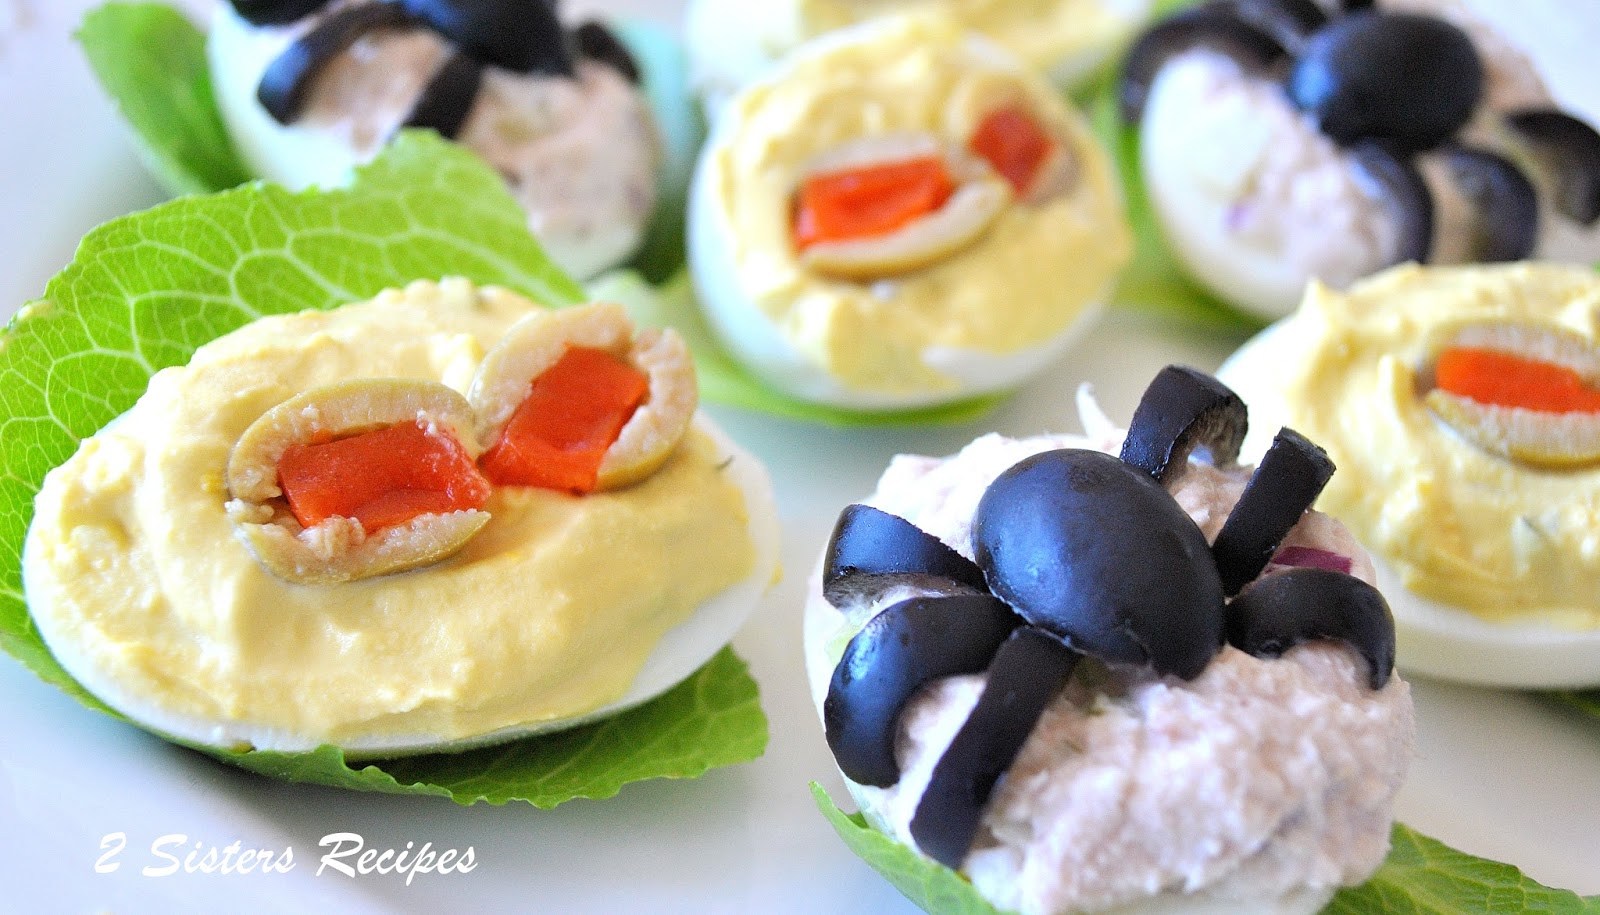 Spooky Deviled Eggs - 2 recipes - 2 Sisters Recipes by Anna and Liz